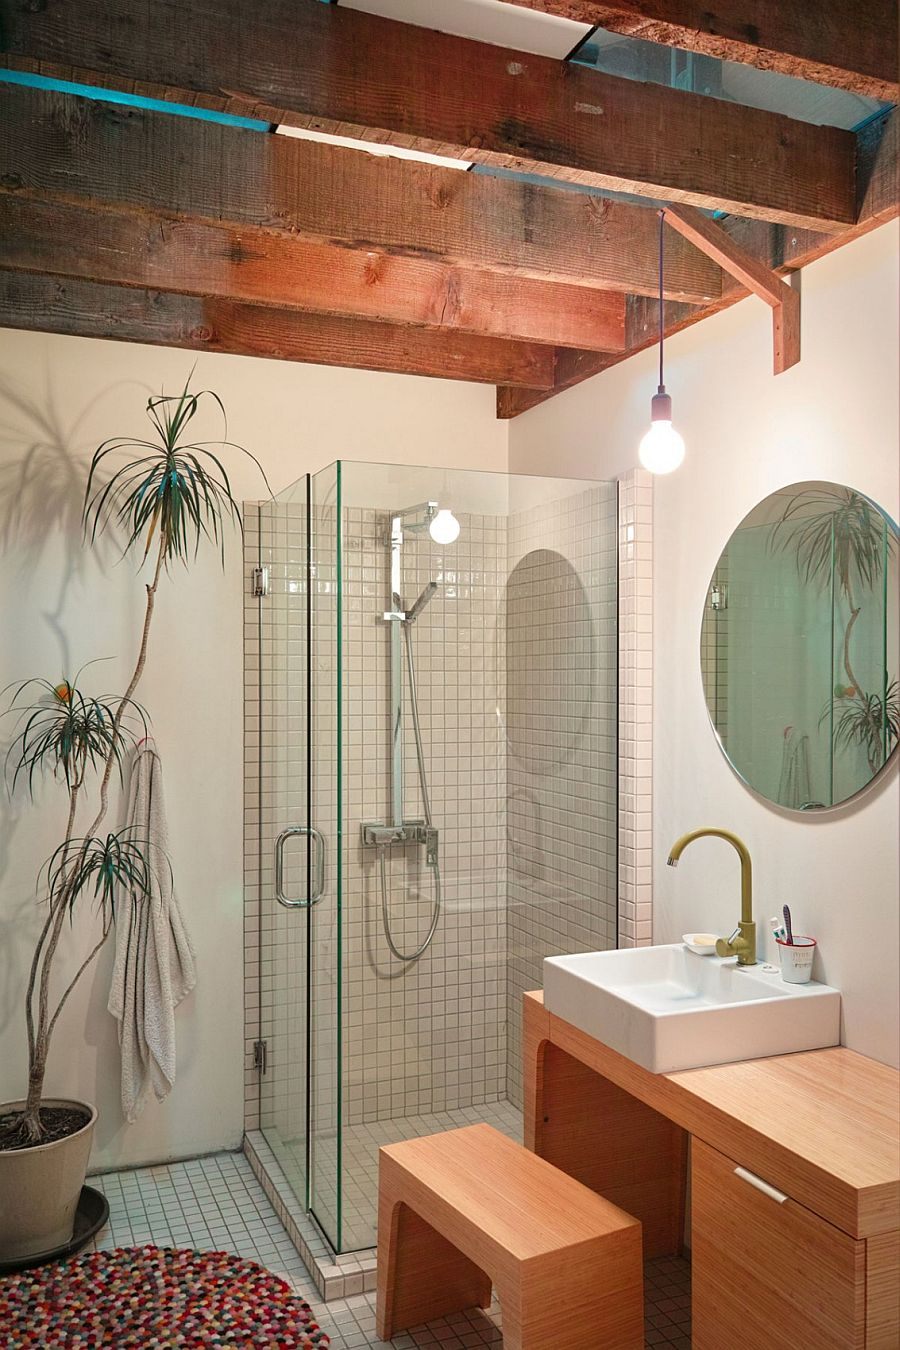 Small corner shower area with a potted plant next to it